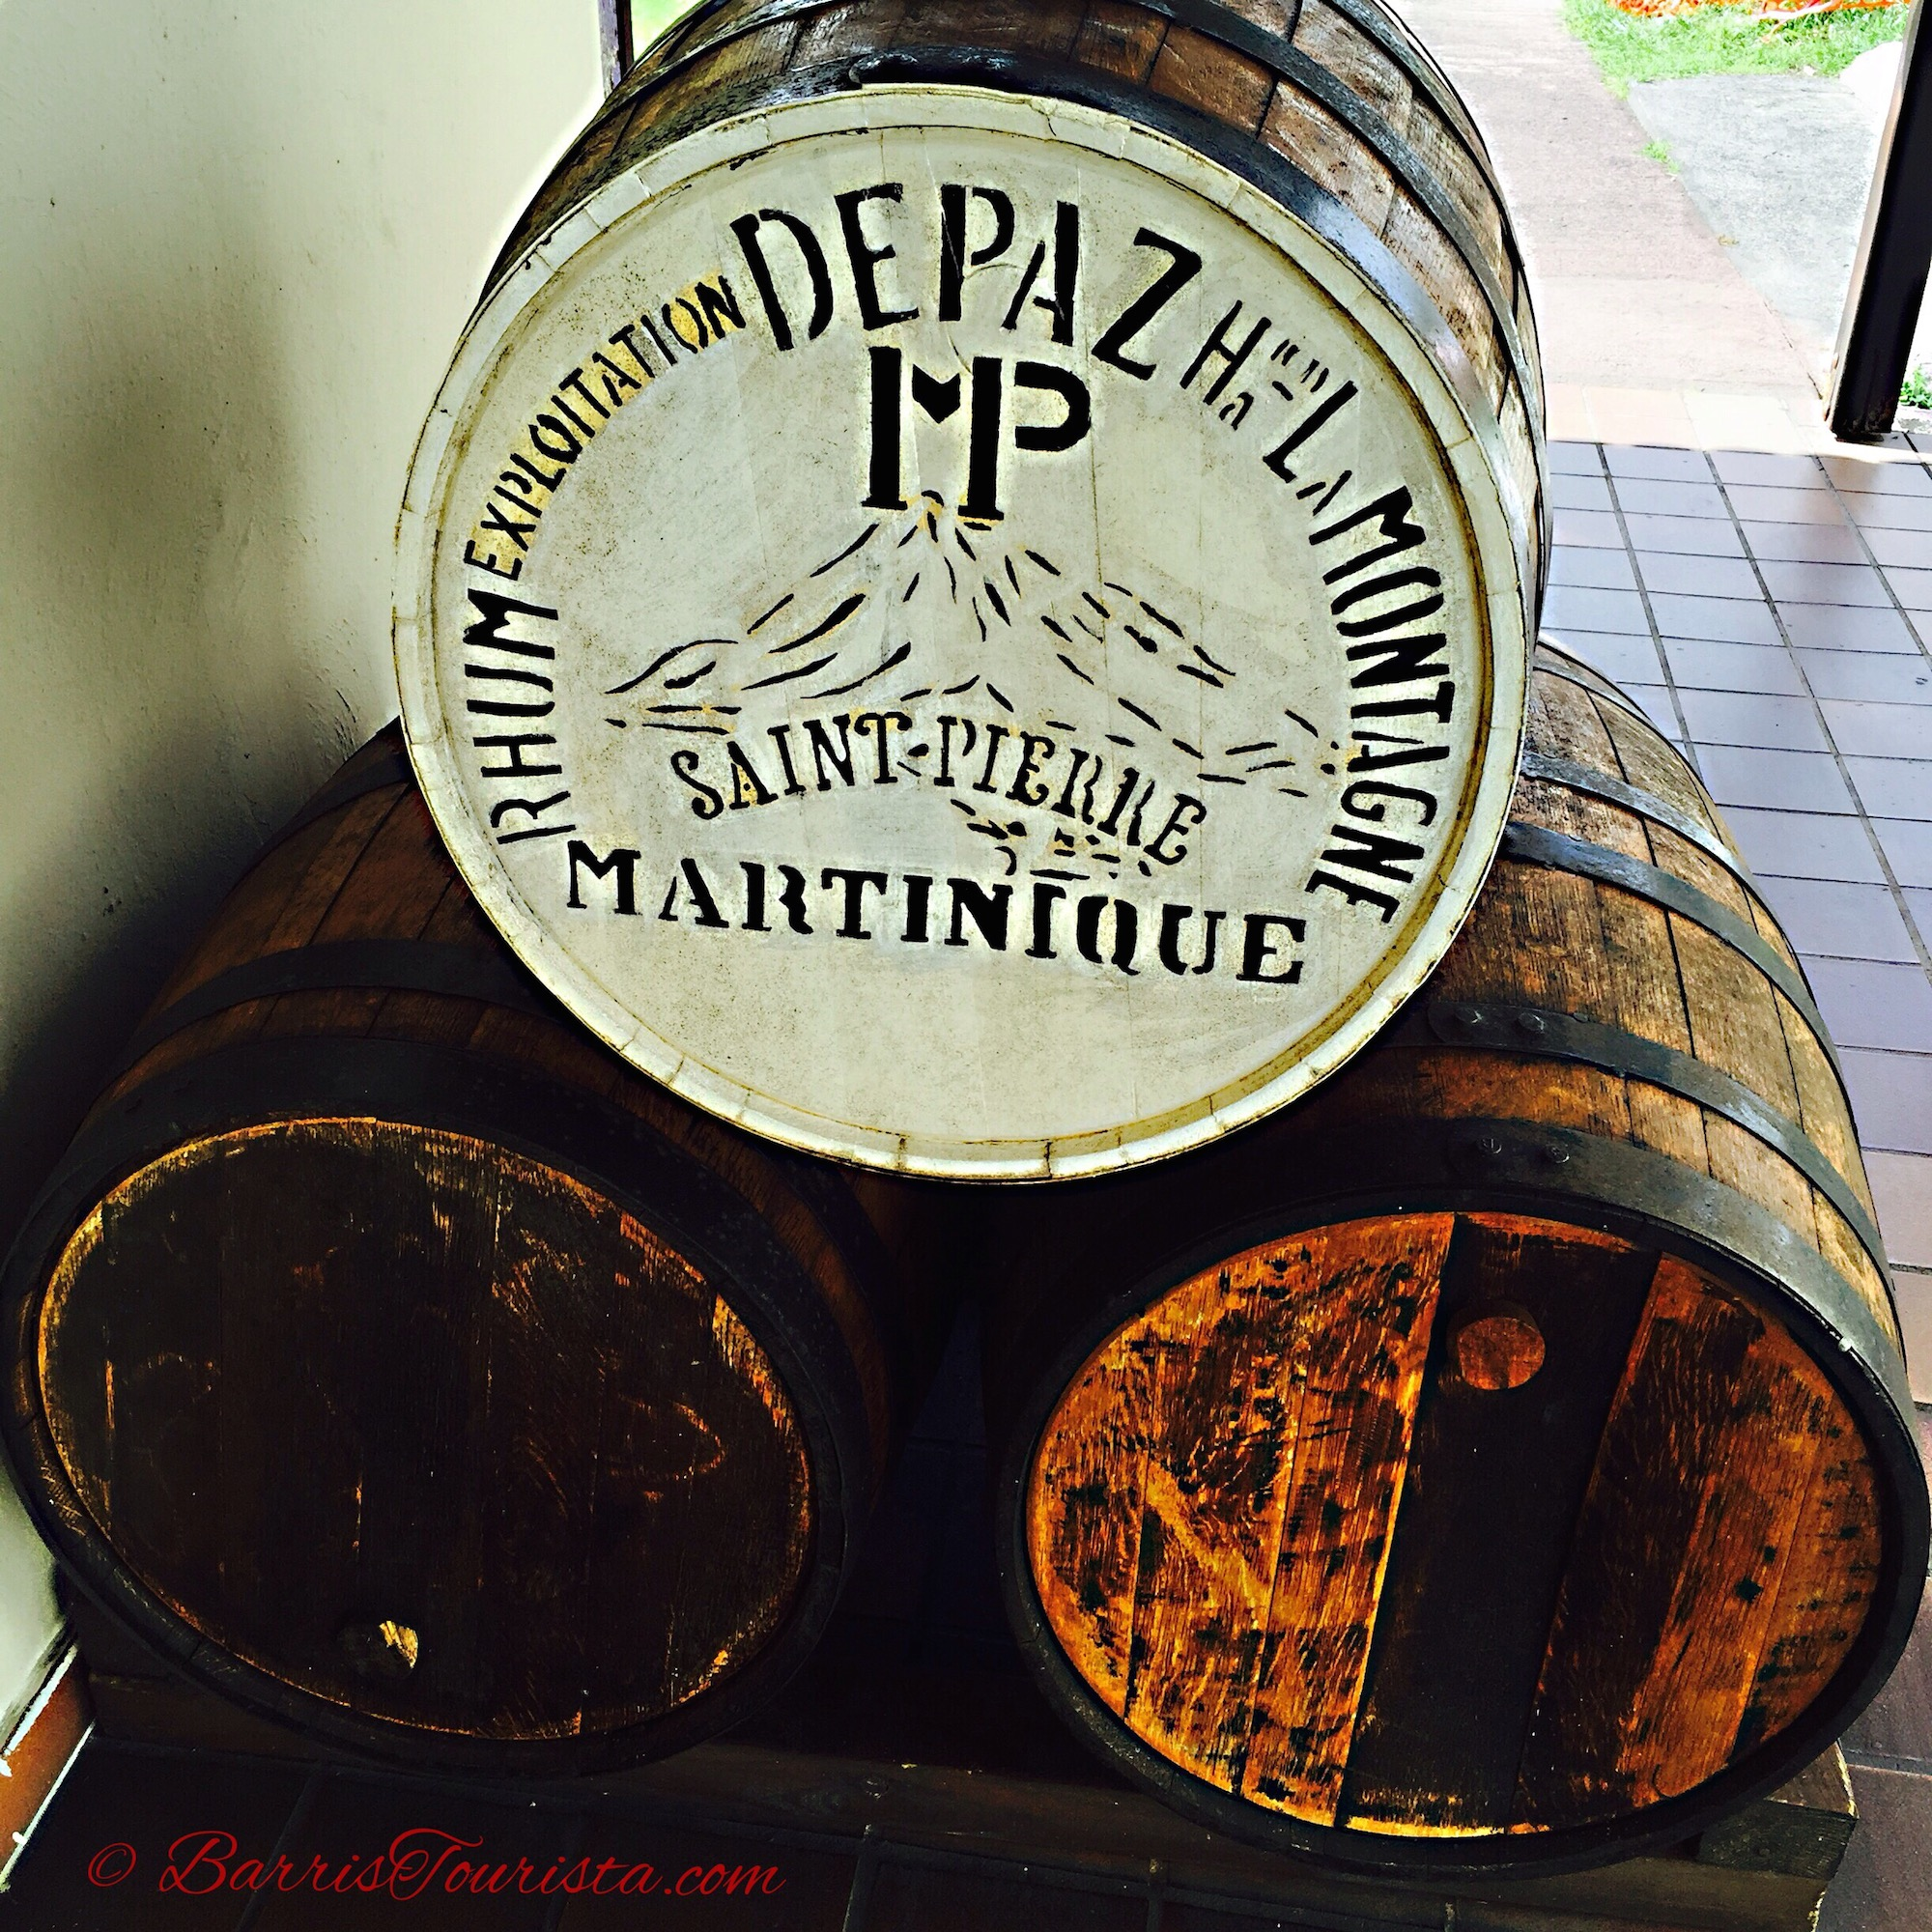 BarrisTourista-Martinique DePaz Distillery karambole tours